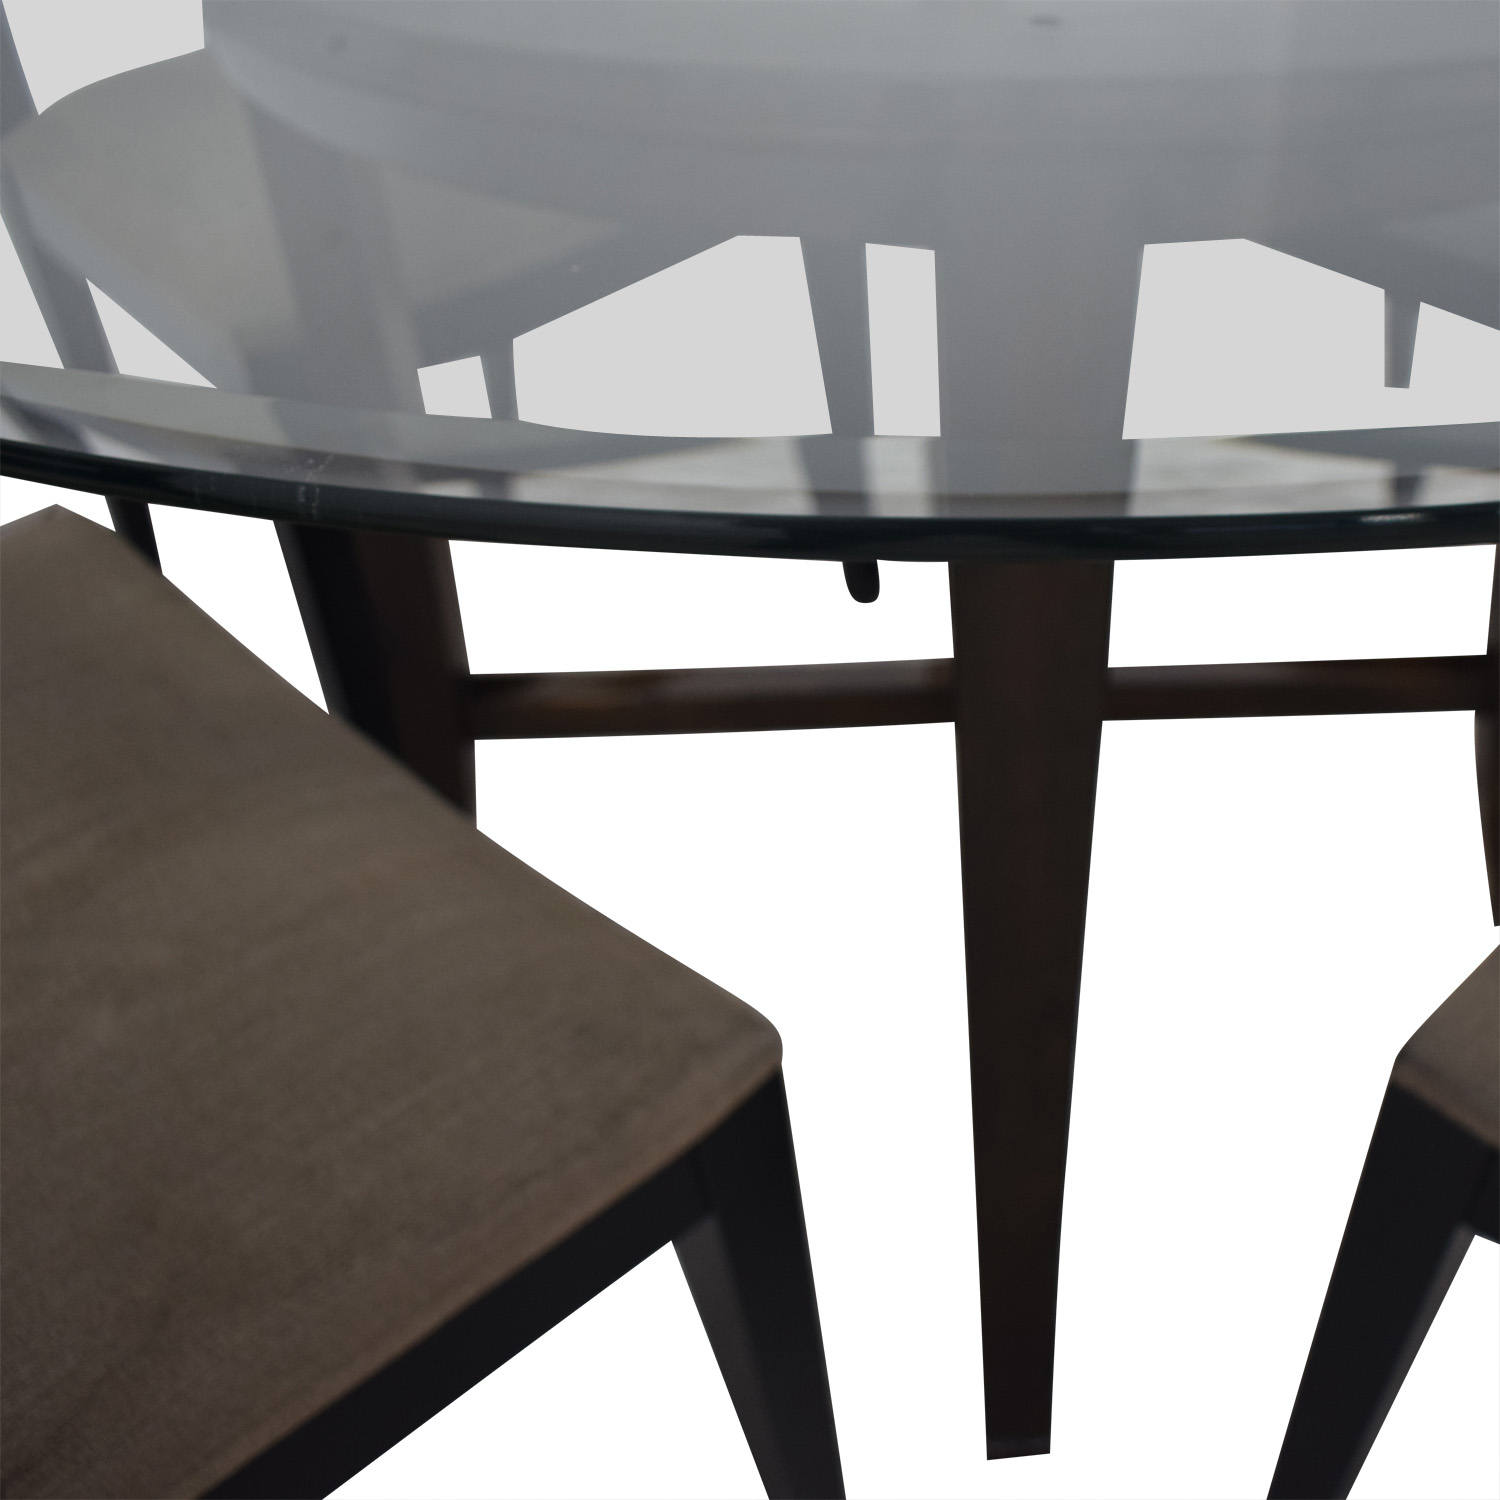 Crate & Barrel Crate & Barrel Halo Table With Basque Upholstered Chairs nj